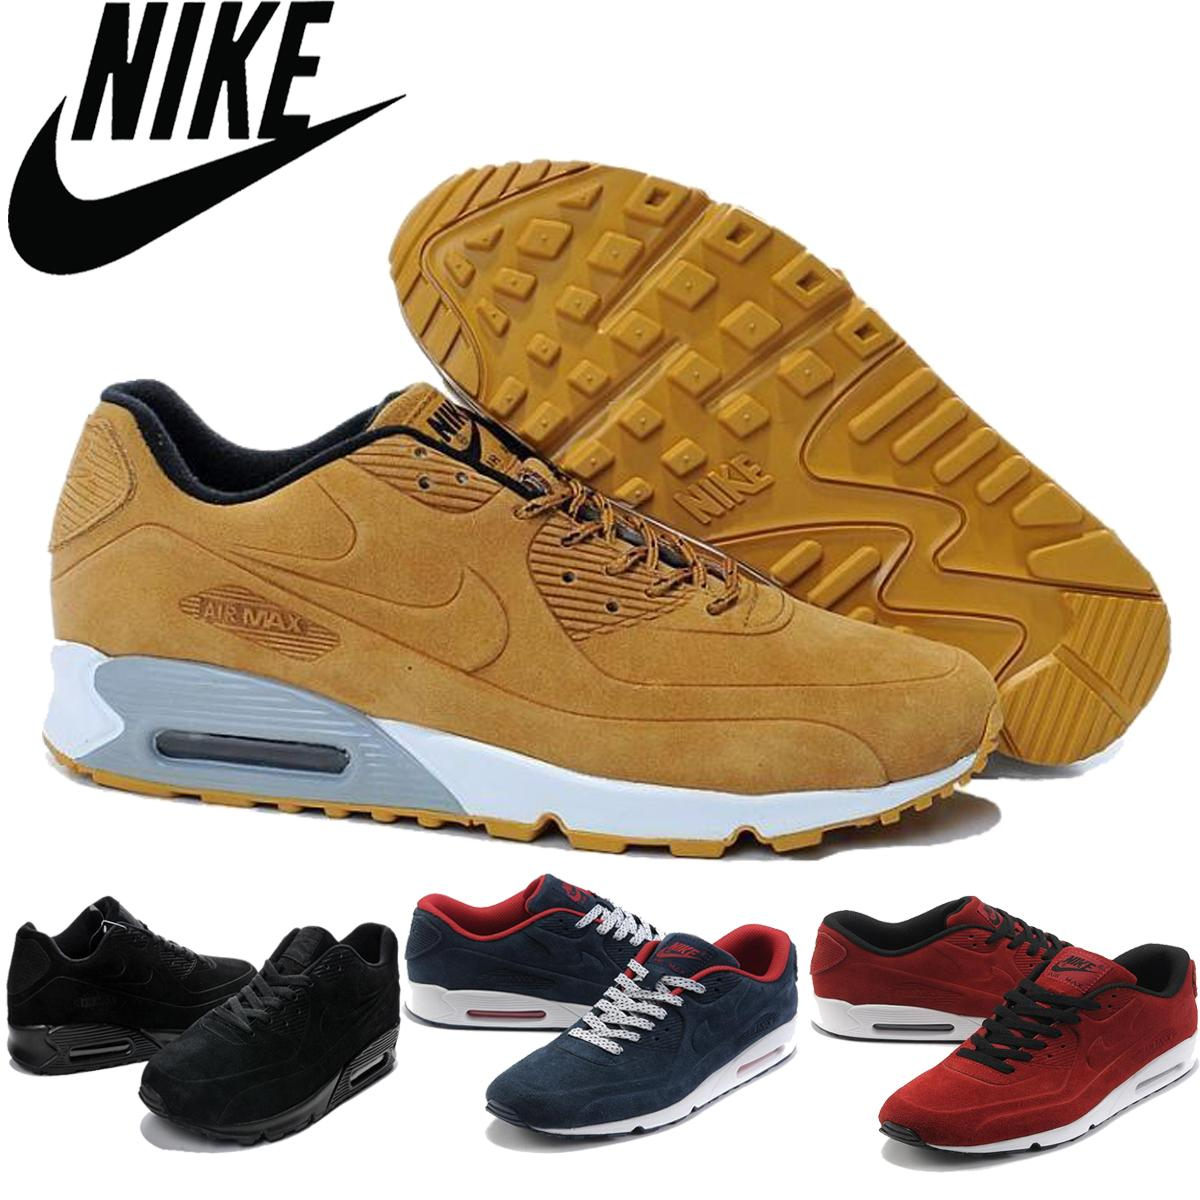 f95907aa6b Nike Air Max 90 Men Shipping 2016 Nike Max 90 Vt Antifur Cow Leather  Running Shoes Fashion Sports Airmax 90vt Training Shoes For Male,40 45 Shoes  Running ...